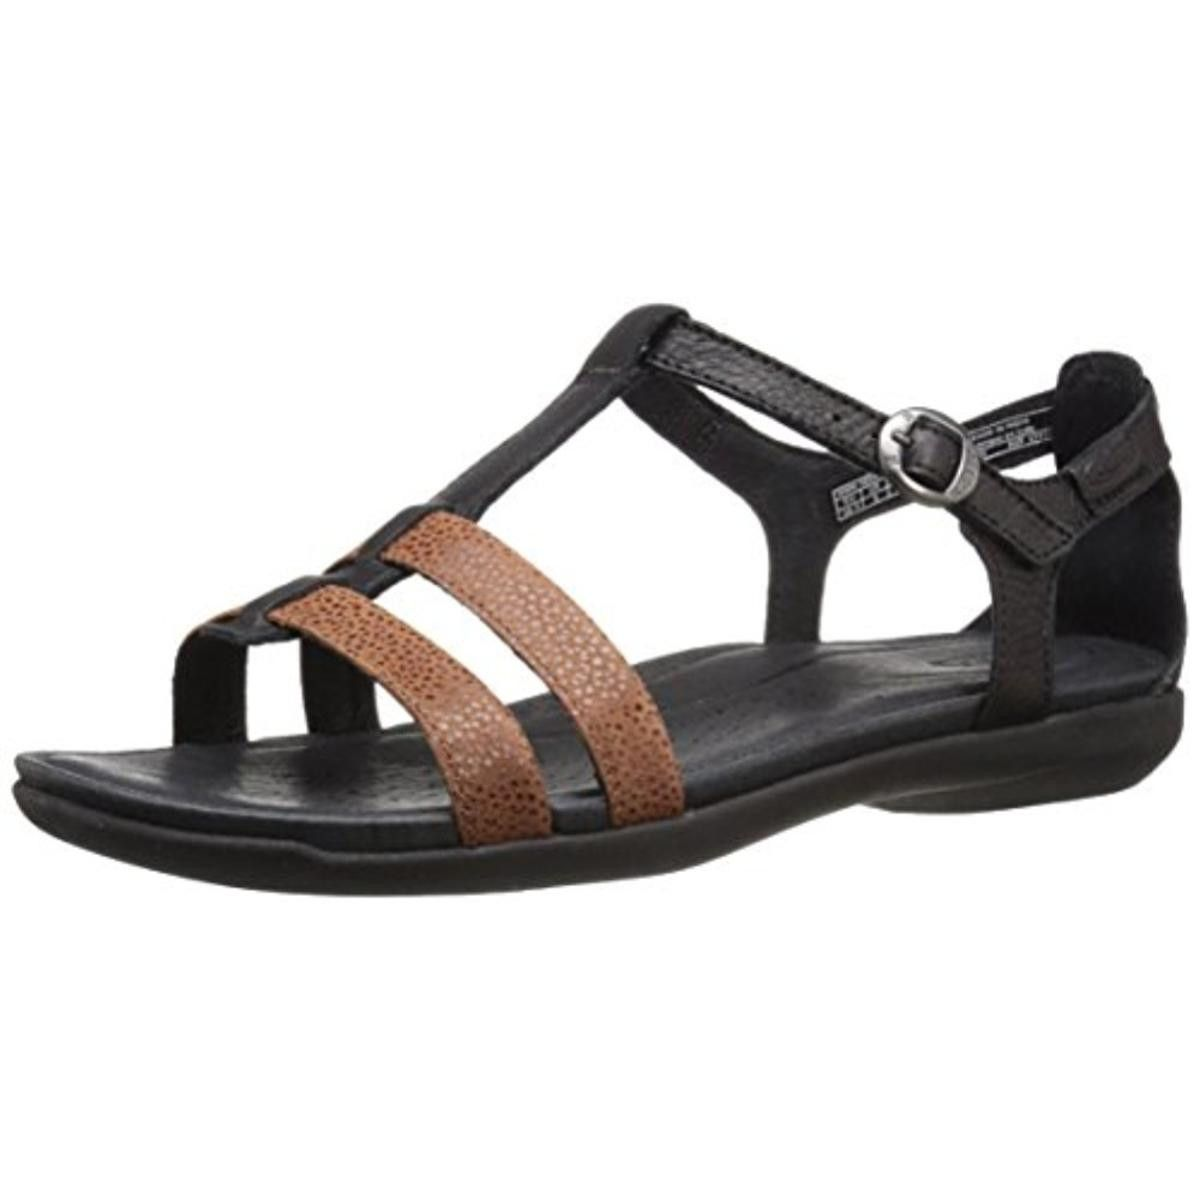 48cf59a548aa Keen Womens Rose City Leather Colorblock T-Strap Sandals